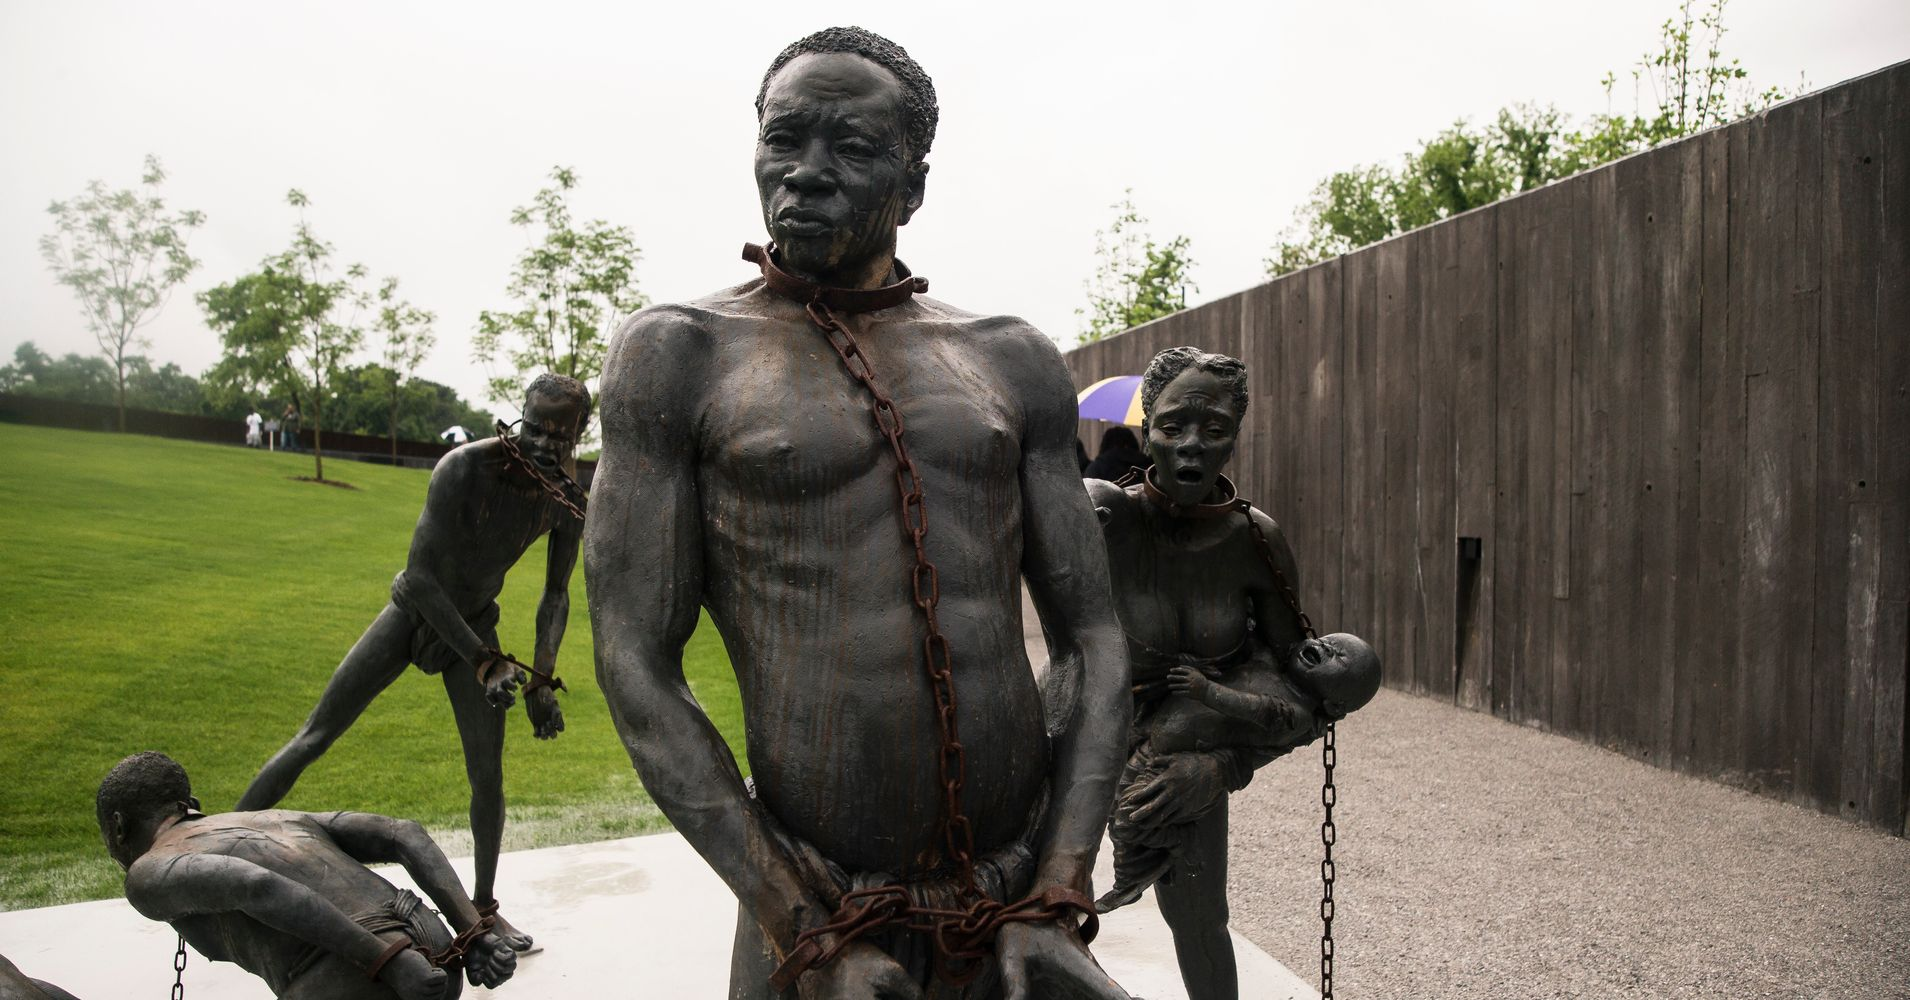 Lynching Didn't Disappear, It Just Evolved | HuffPost